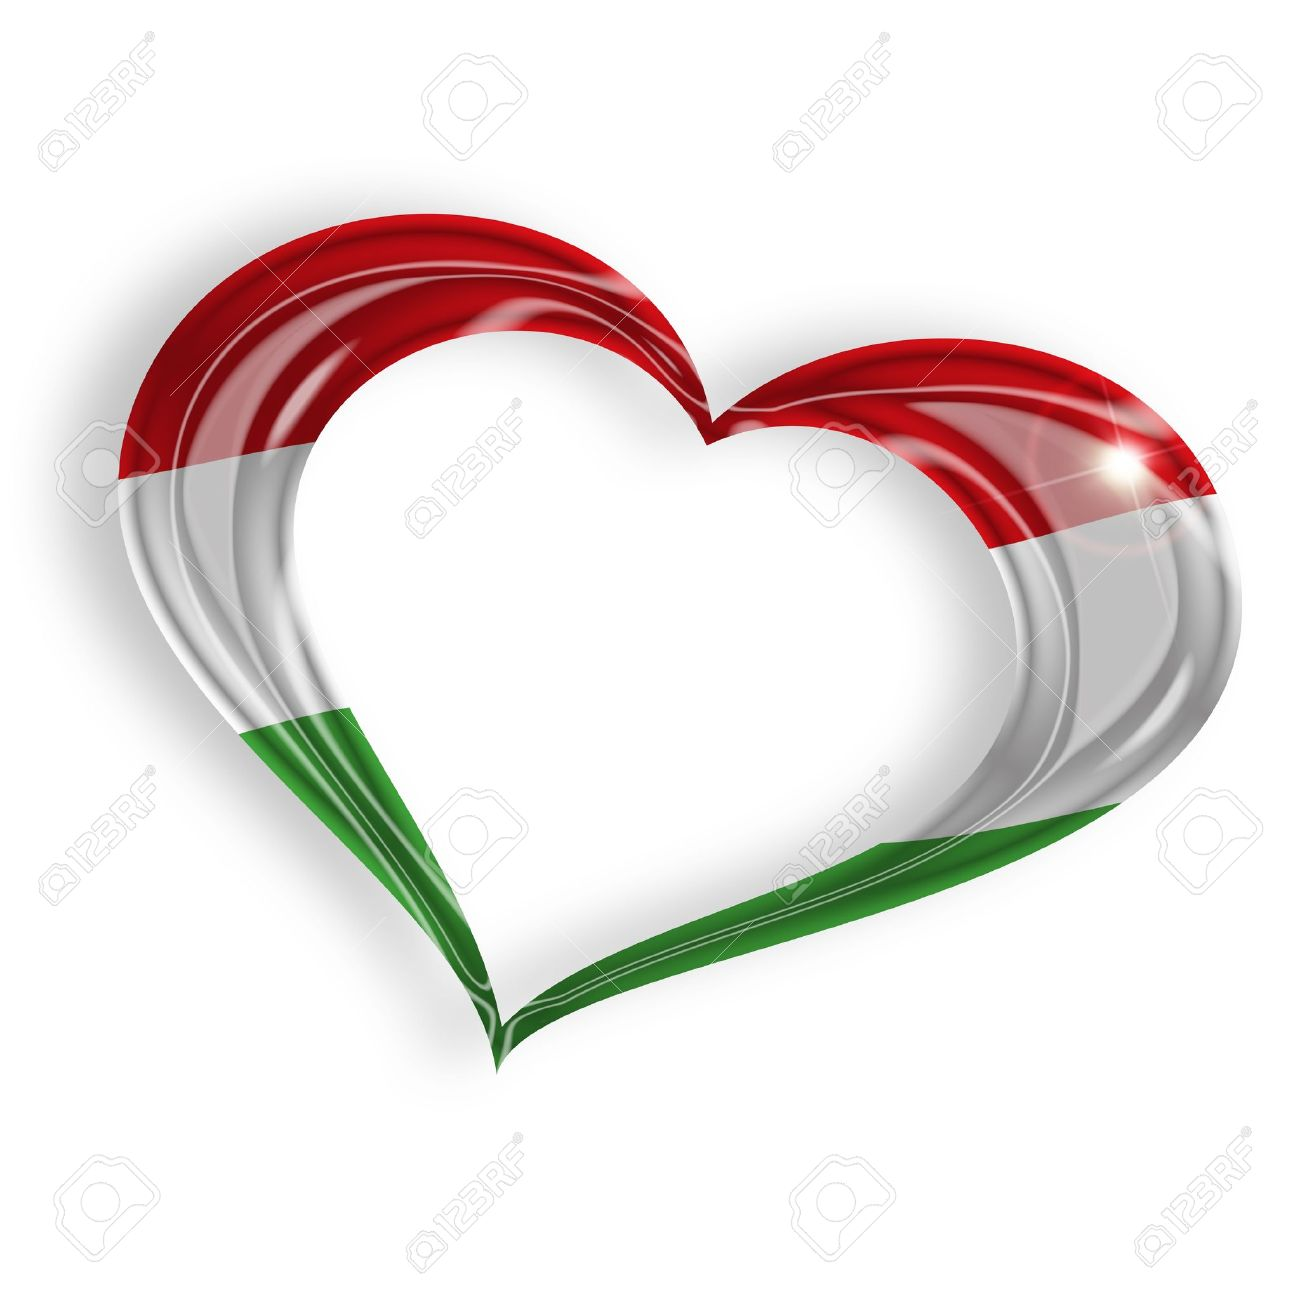 Hungary clipart #6, Download drawings